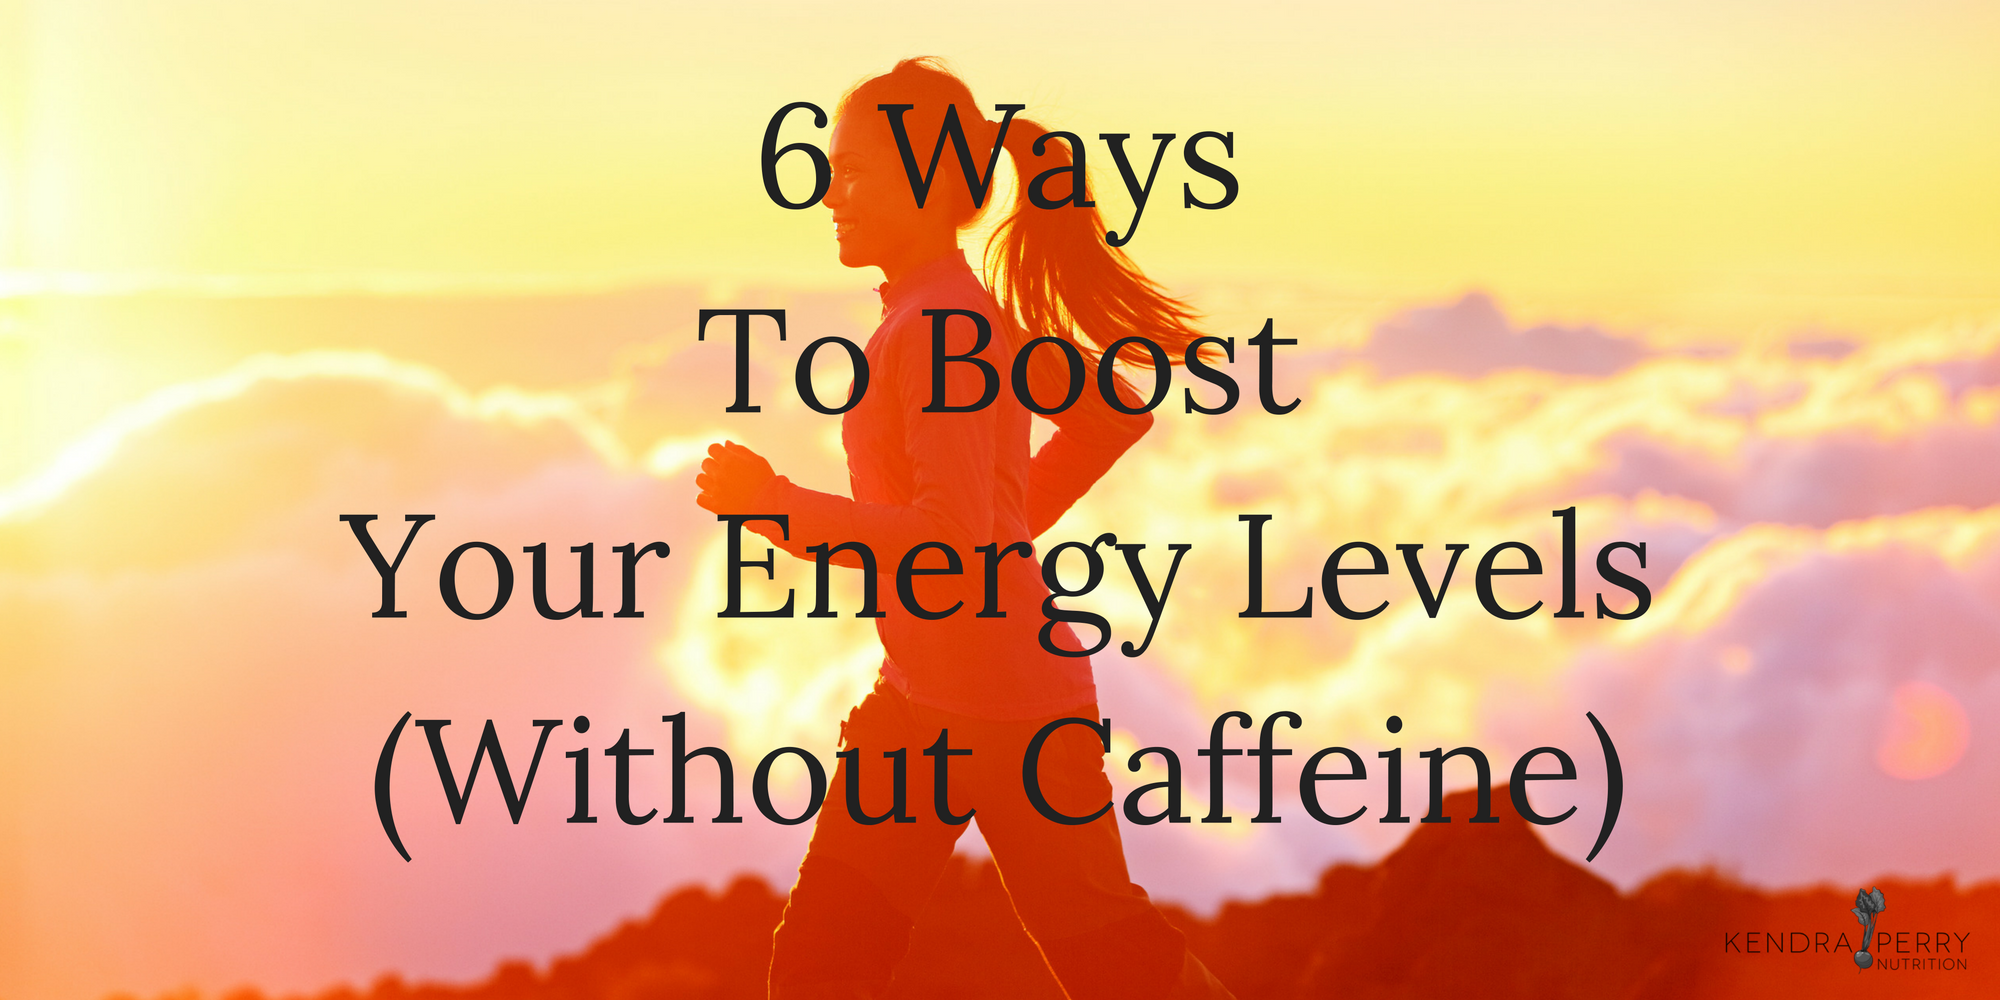 6-ways-to-boost-your-energy-levels-without-caffeine-2